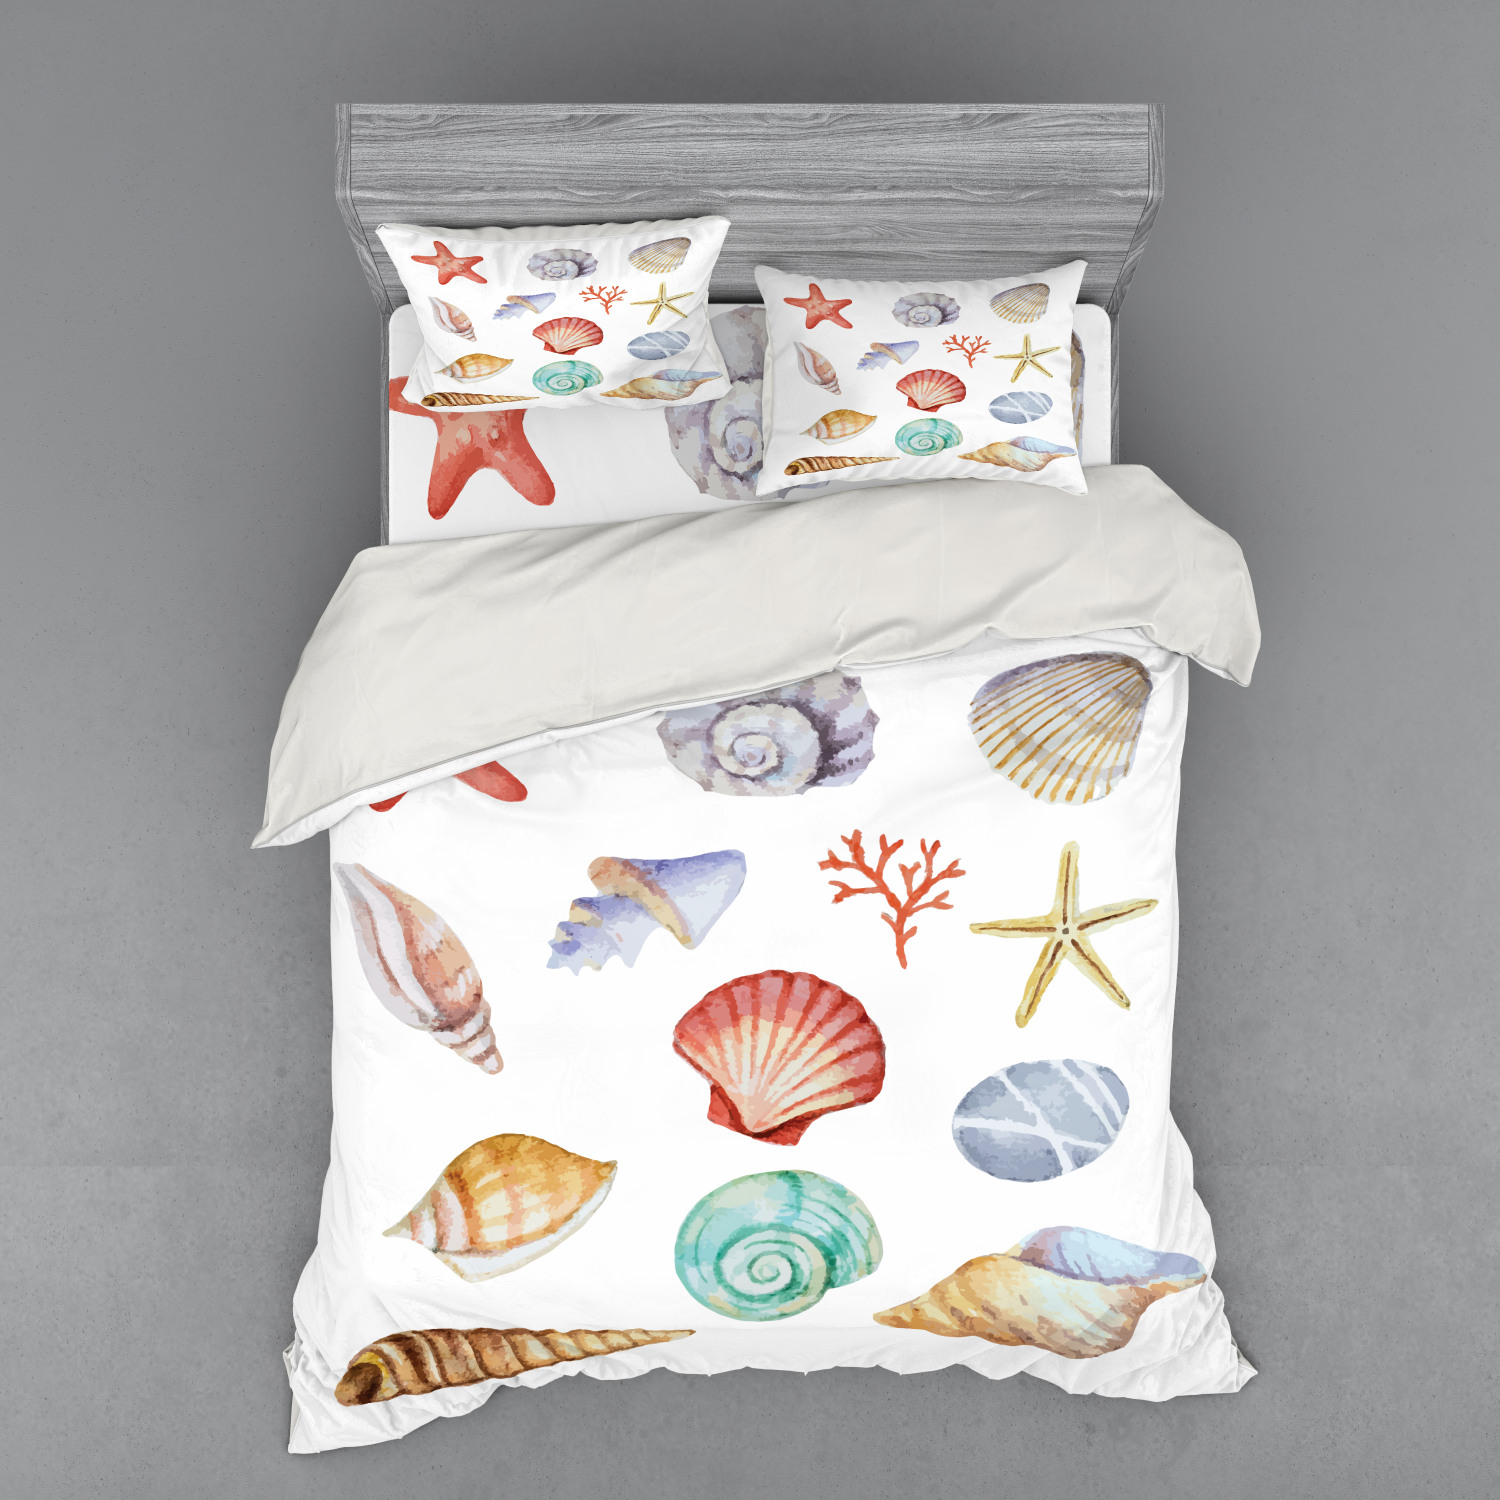 thumbnail 182 - Ambesonne Summer Bedding Set Duvet Cover Sham Fitted Sheet in 3 Sizes